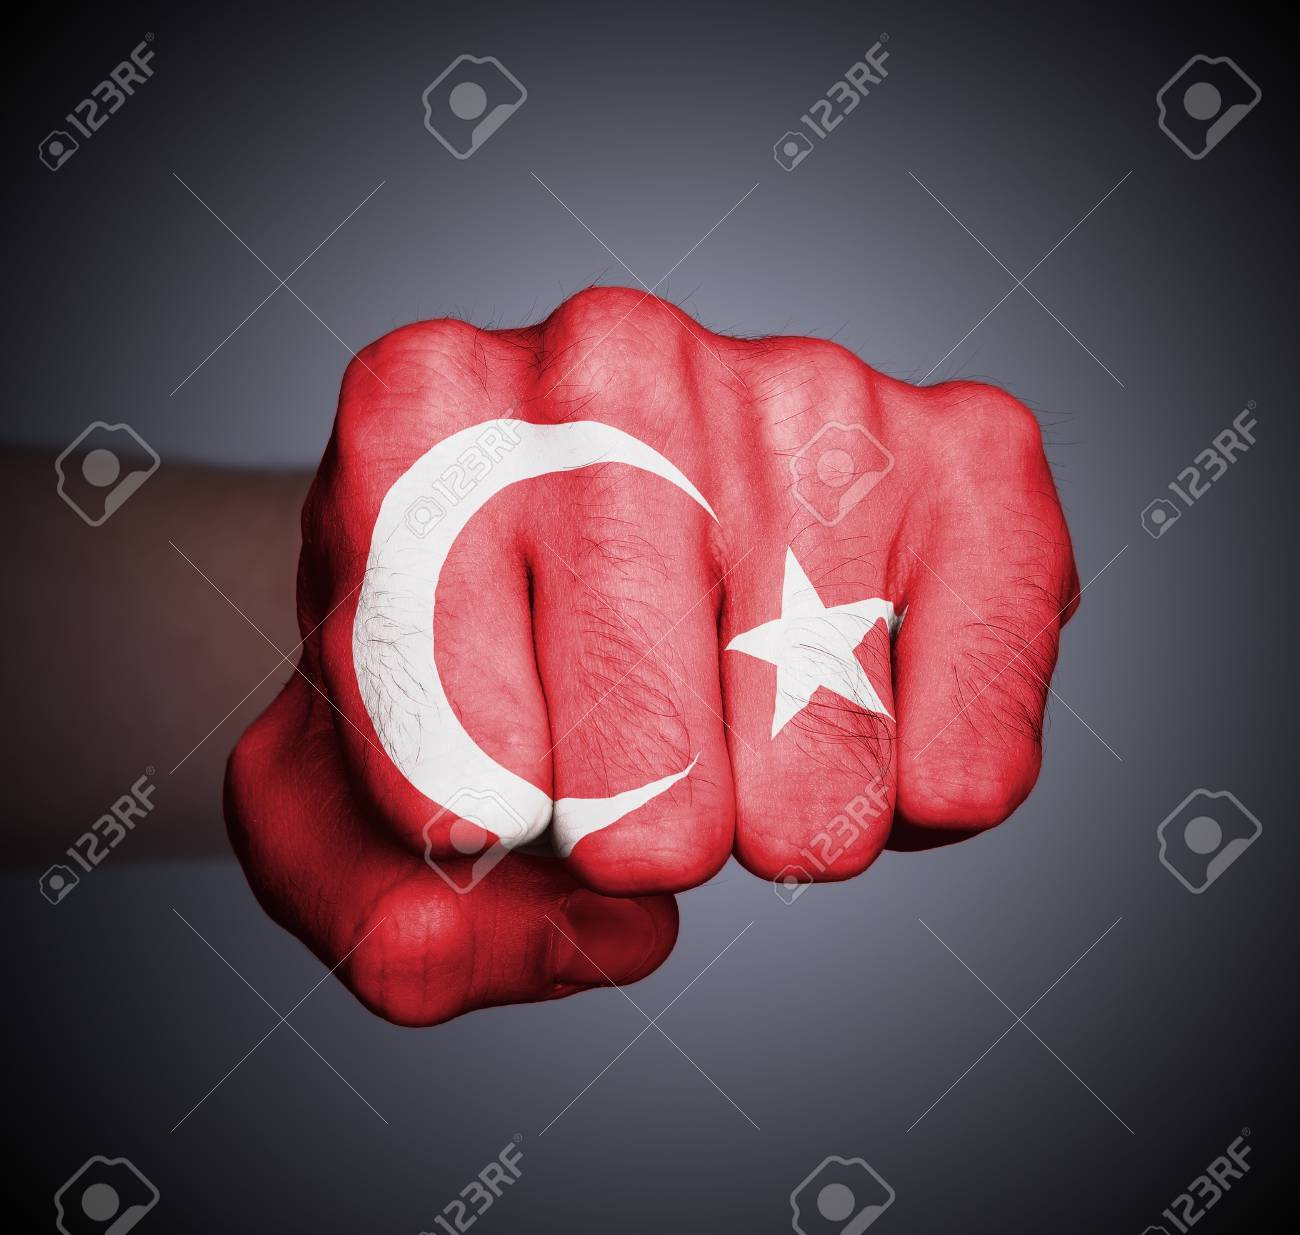 Front view of punching fist on gray background, flag of Turkey Stock Photo - 17387796